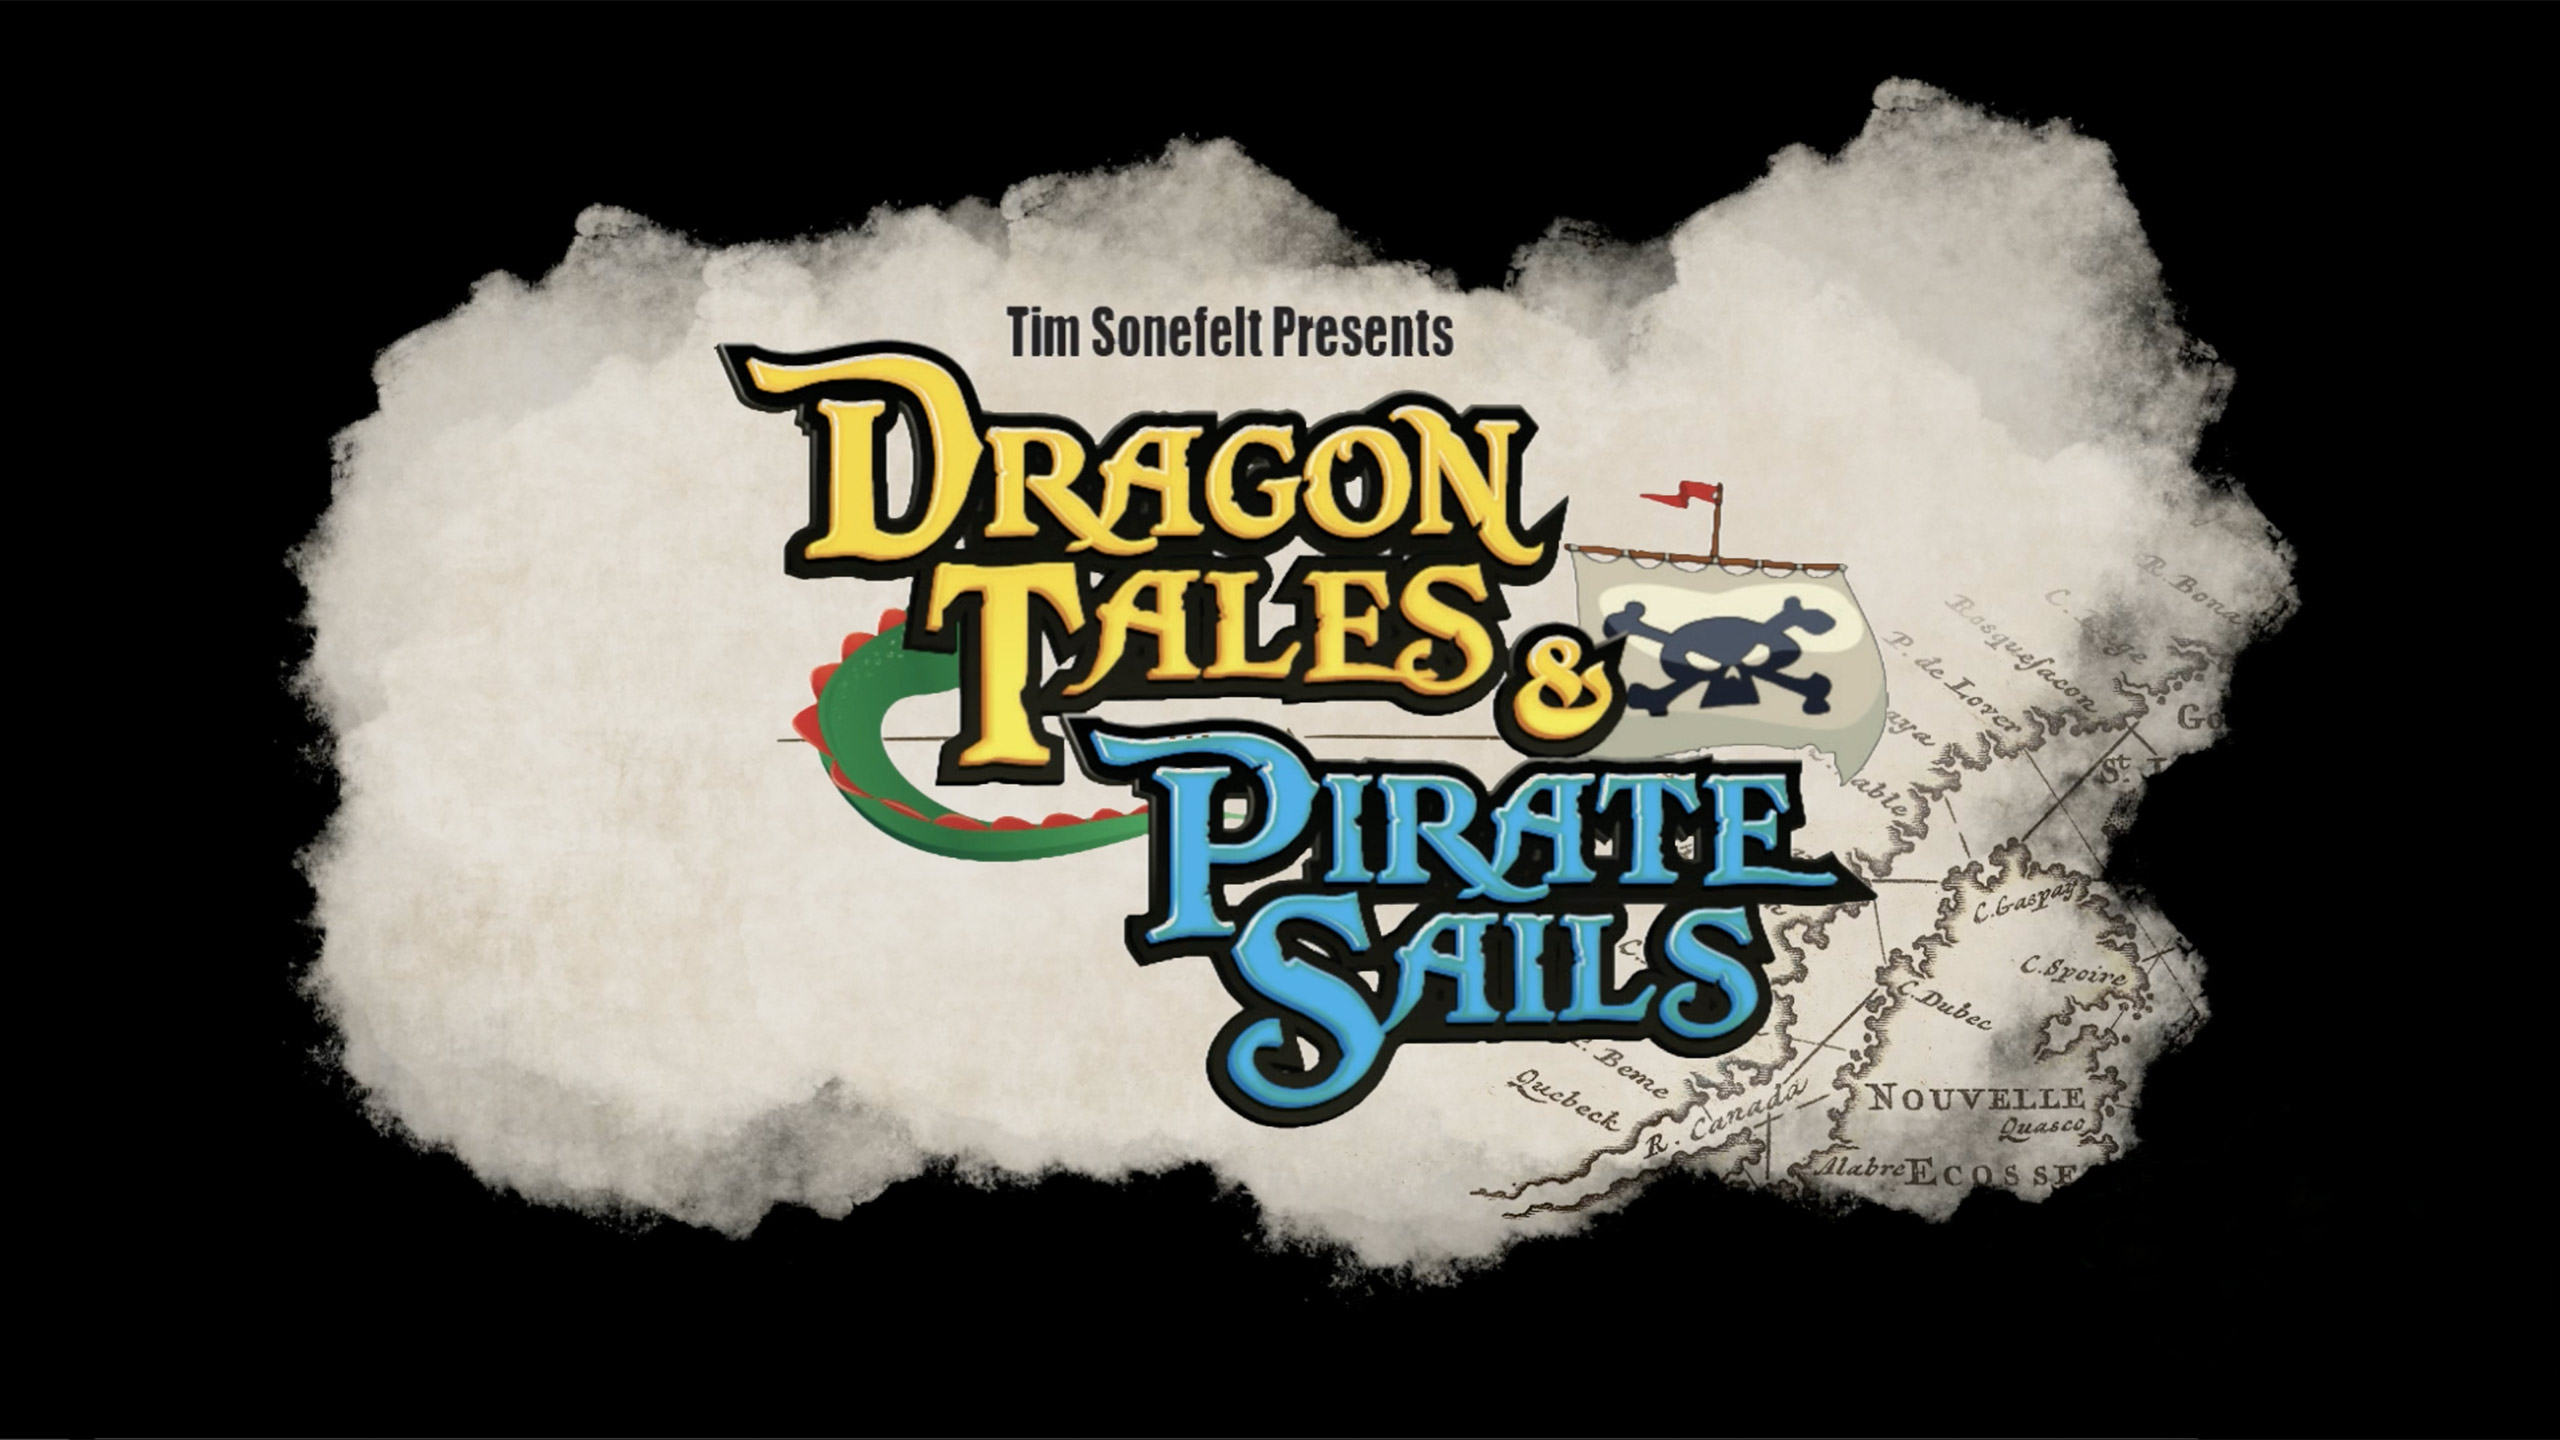 Dragon Tales & Pirate Sails